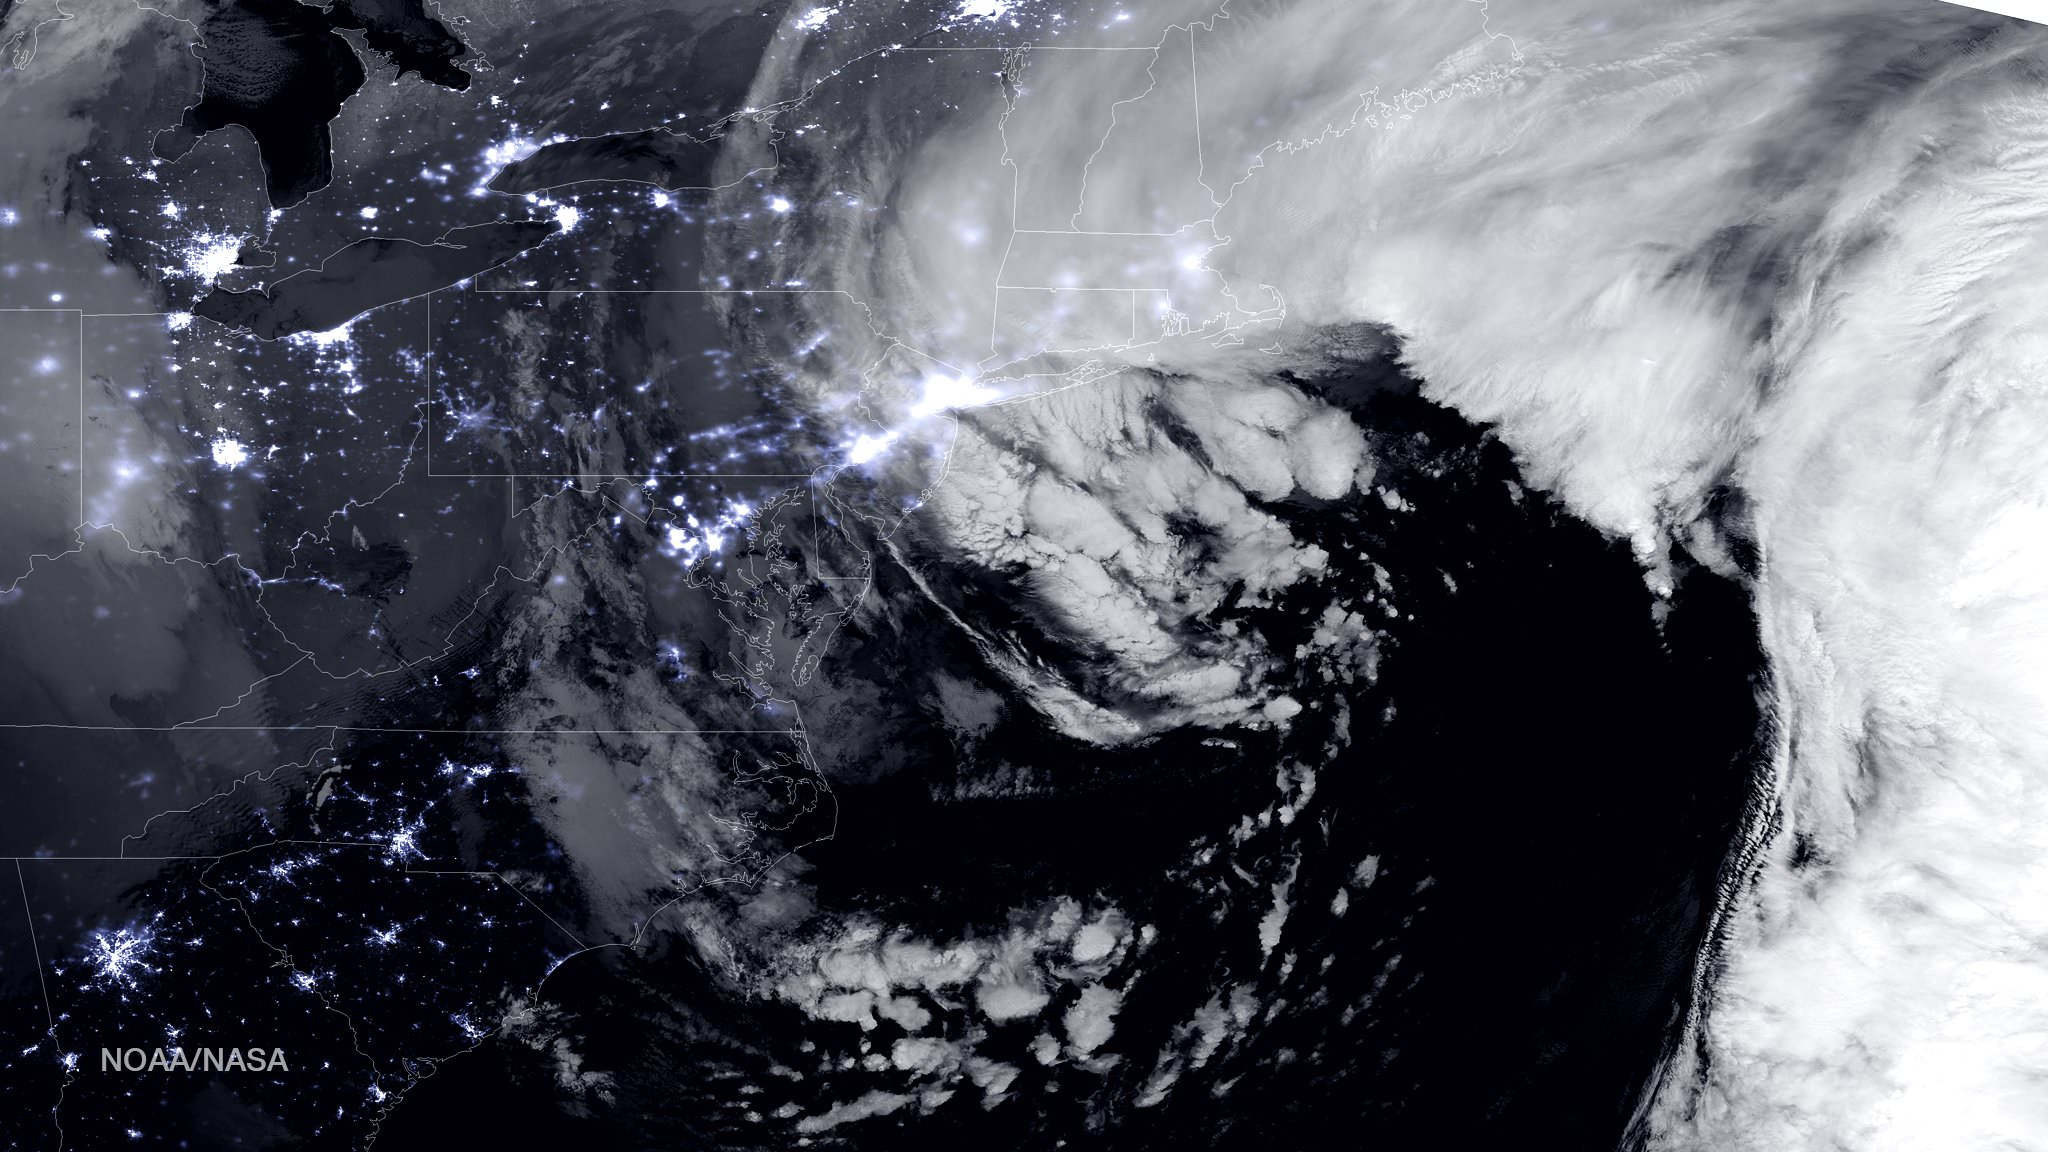 NASA and NOAA Satellites Image Crippling Blizzard of 2015 ...